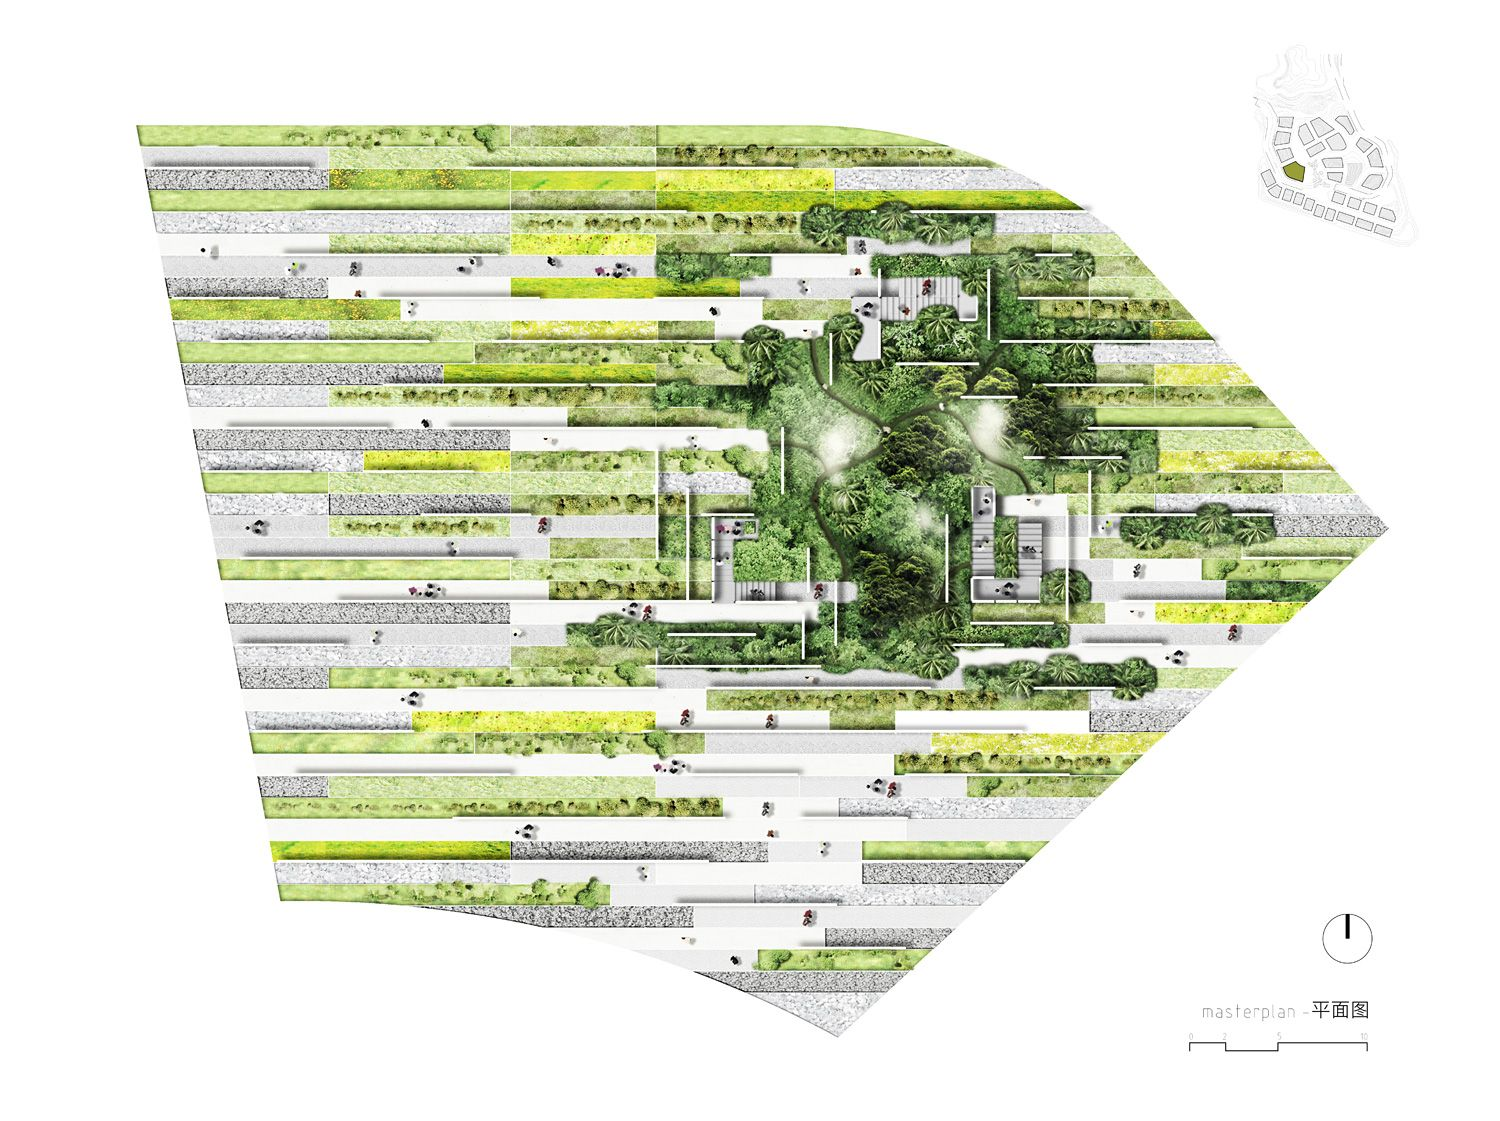 Bustler: The Forest Tissue Garden, a 3rd prize winner for the 10th ...